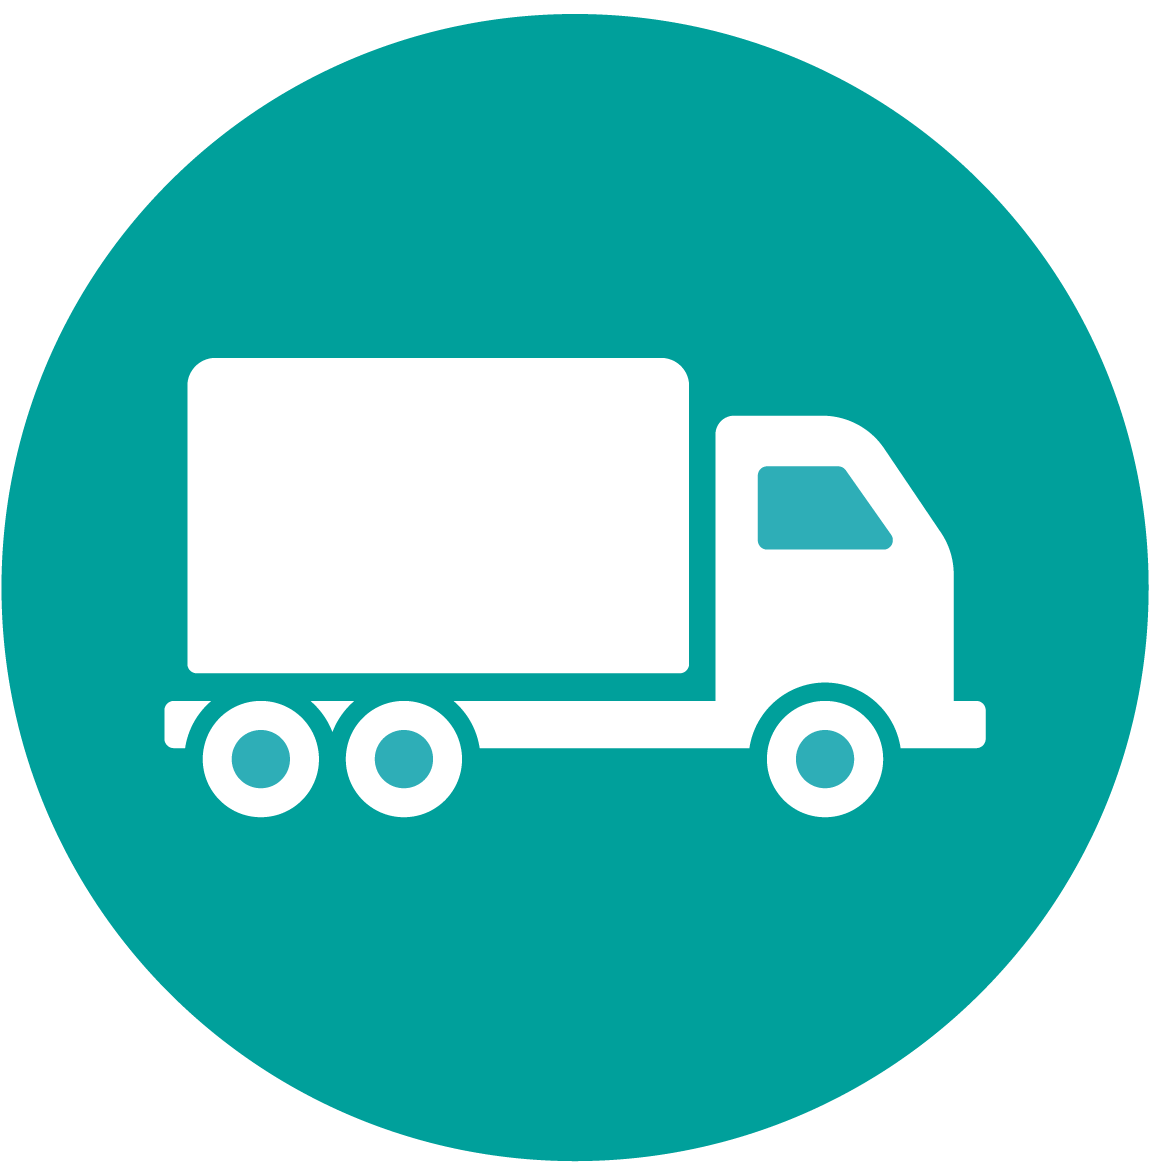 truck-icon-64378.png